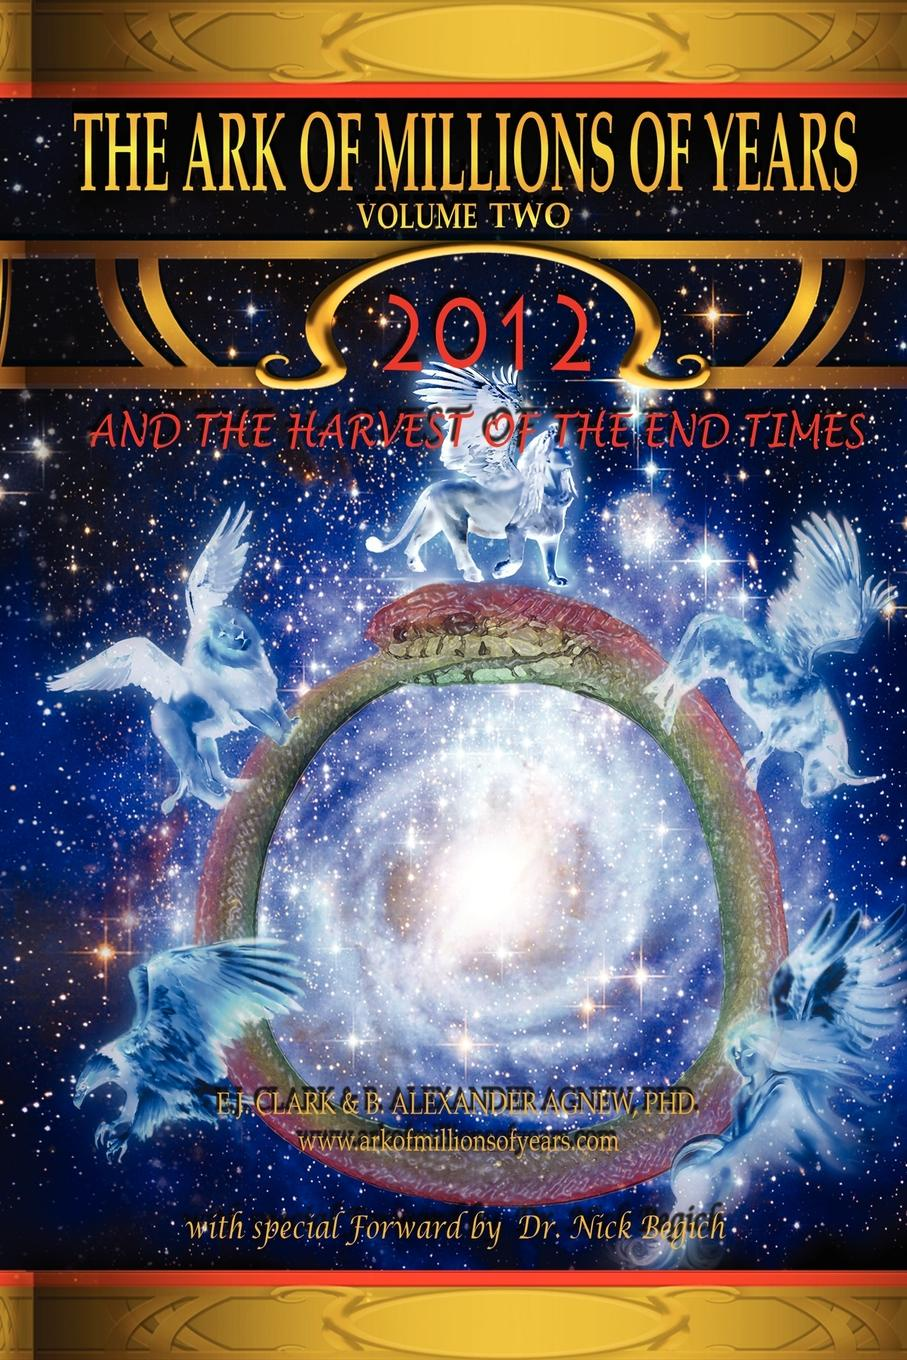 E. J. Clark, Alexander Ph. Agnew The Ark of Millions of Years Volume Two. 2012 and the Harvest of the End Times graham stewart the history of the times the murdoch years